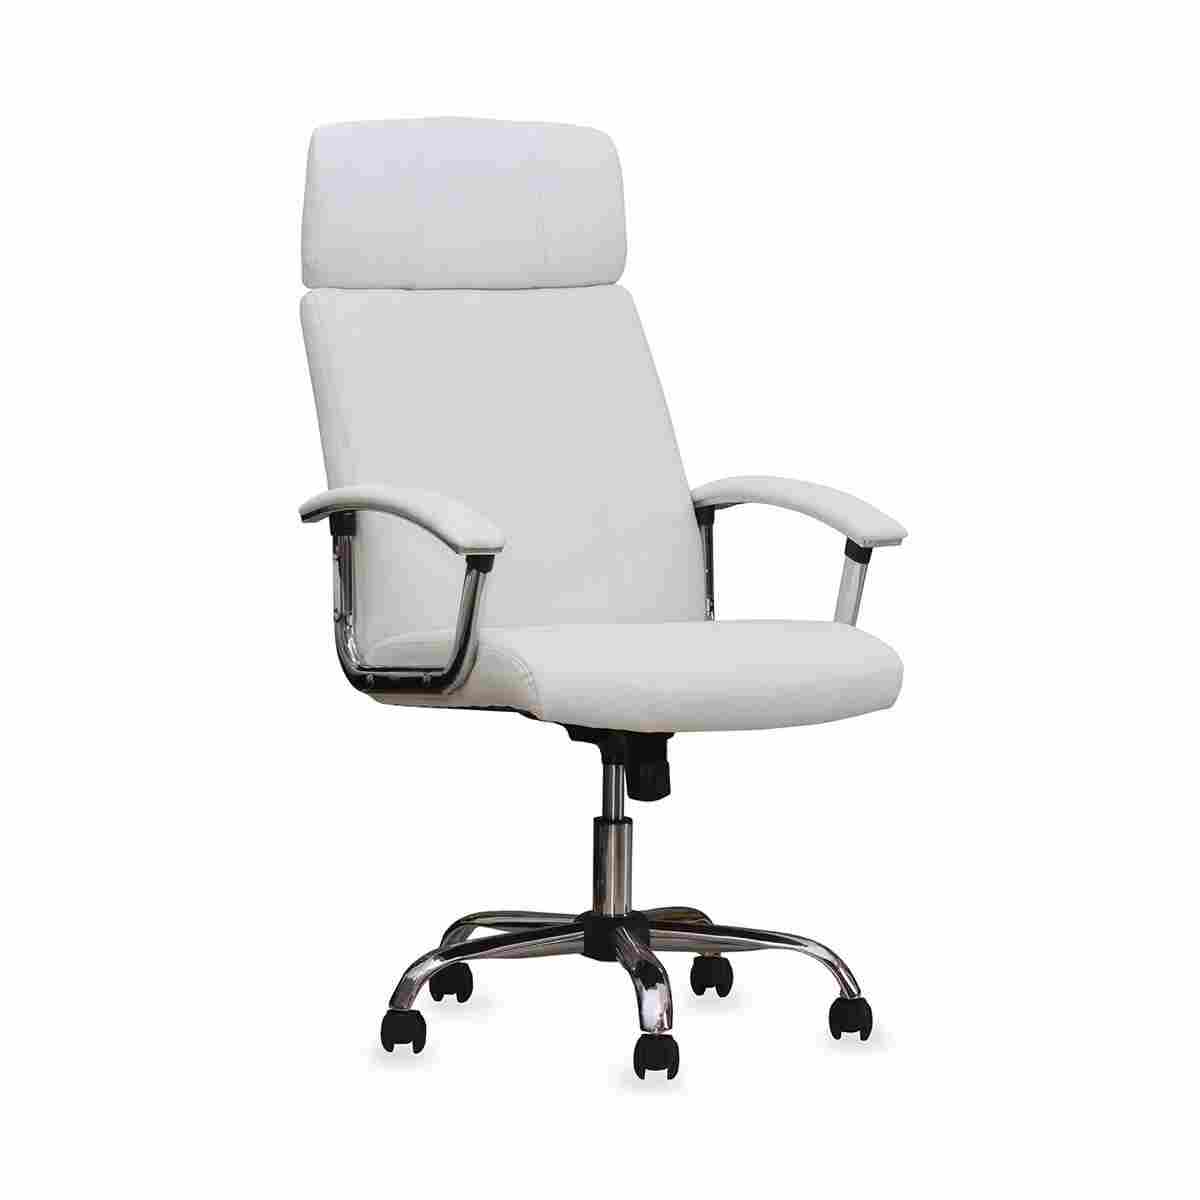 White Leather Office Chair Welcome, White Leather Computer Chairs